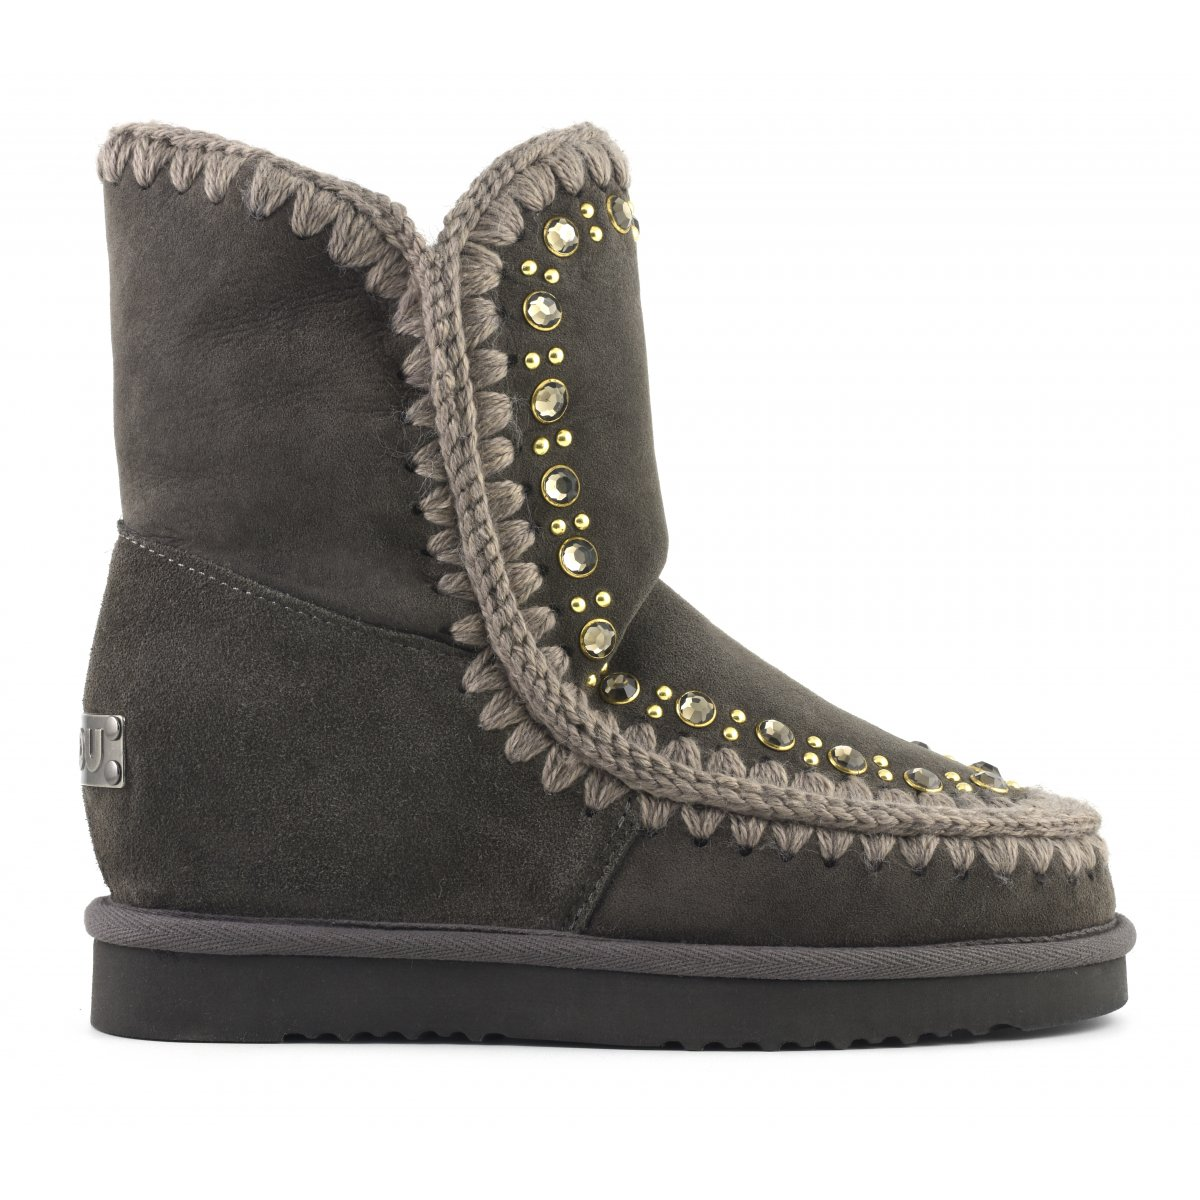 904a4fff52f7 inner wedge with studs   crystals - inner wedge mou women fall winter